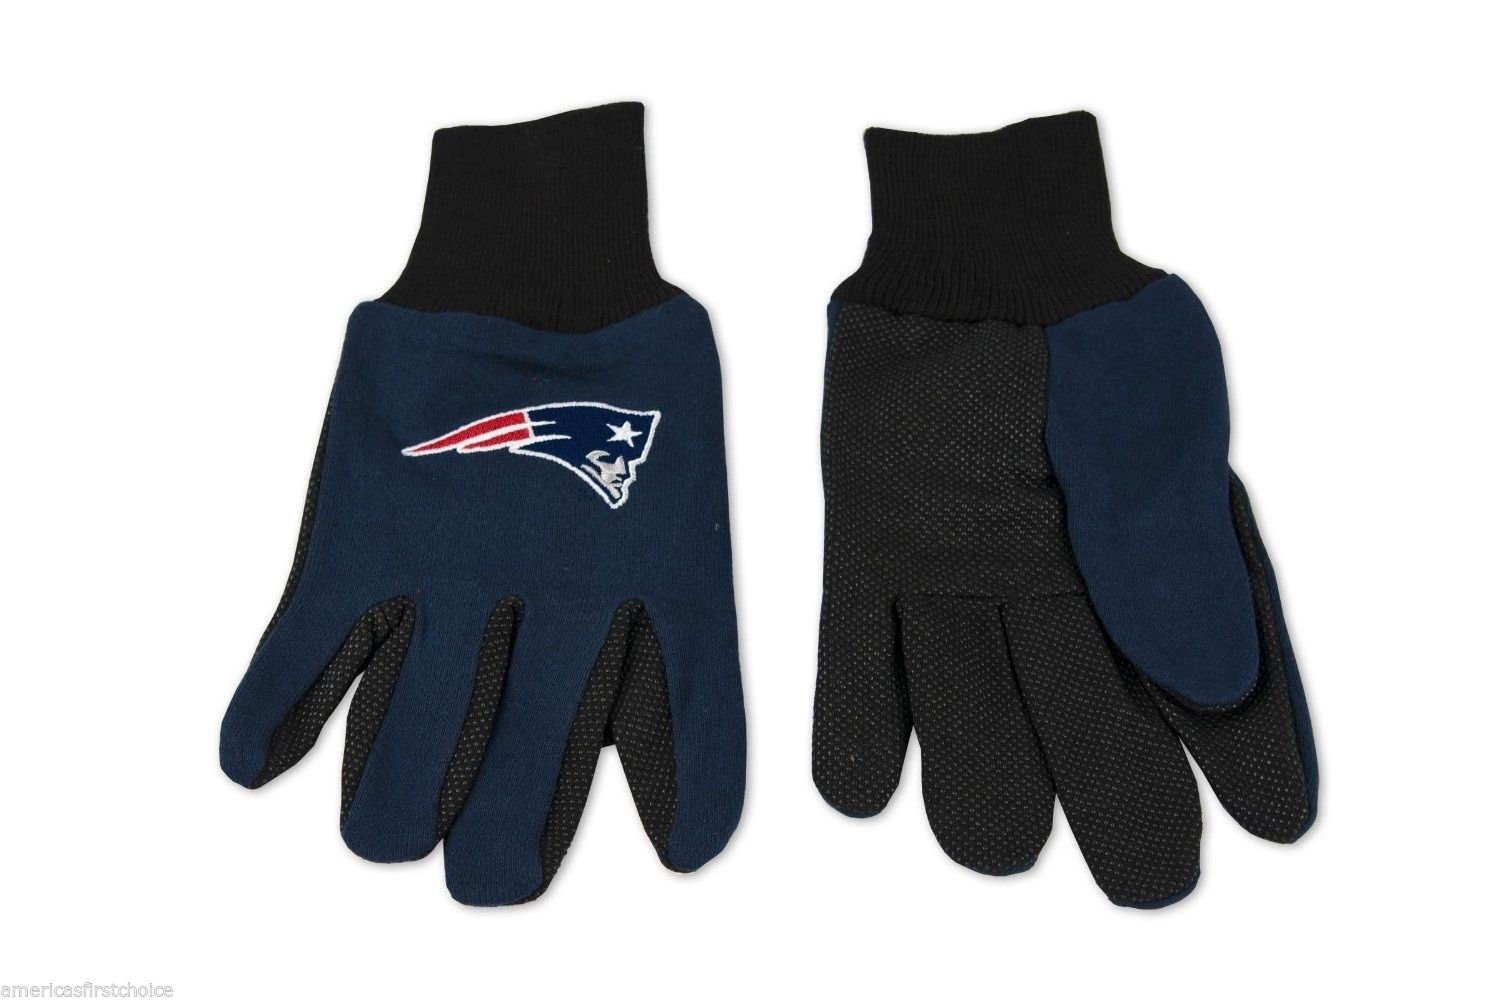 Granny 's Best Deals ( C ) Forever Collectibles NFL 2015新しいEngland Patriots Kids 2トーンブルー/ブラックユーティリティ作業gloves-brand新しい。 B019TNP02G